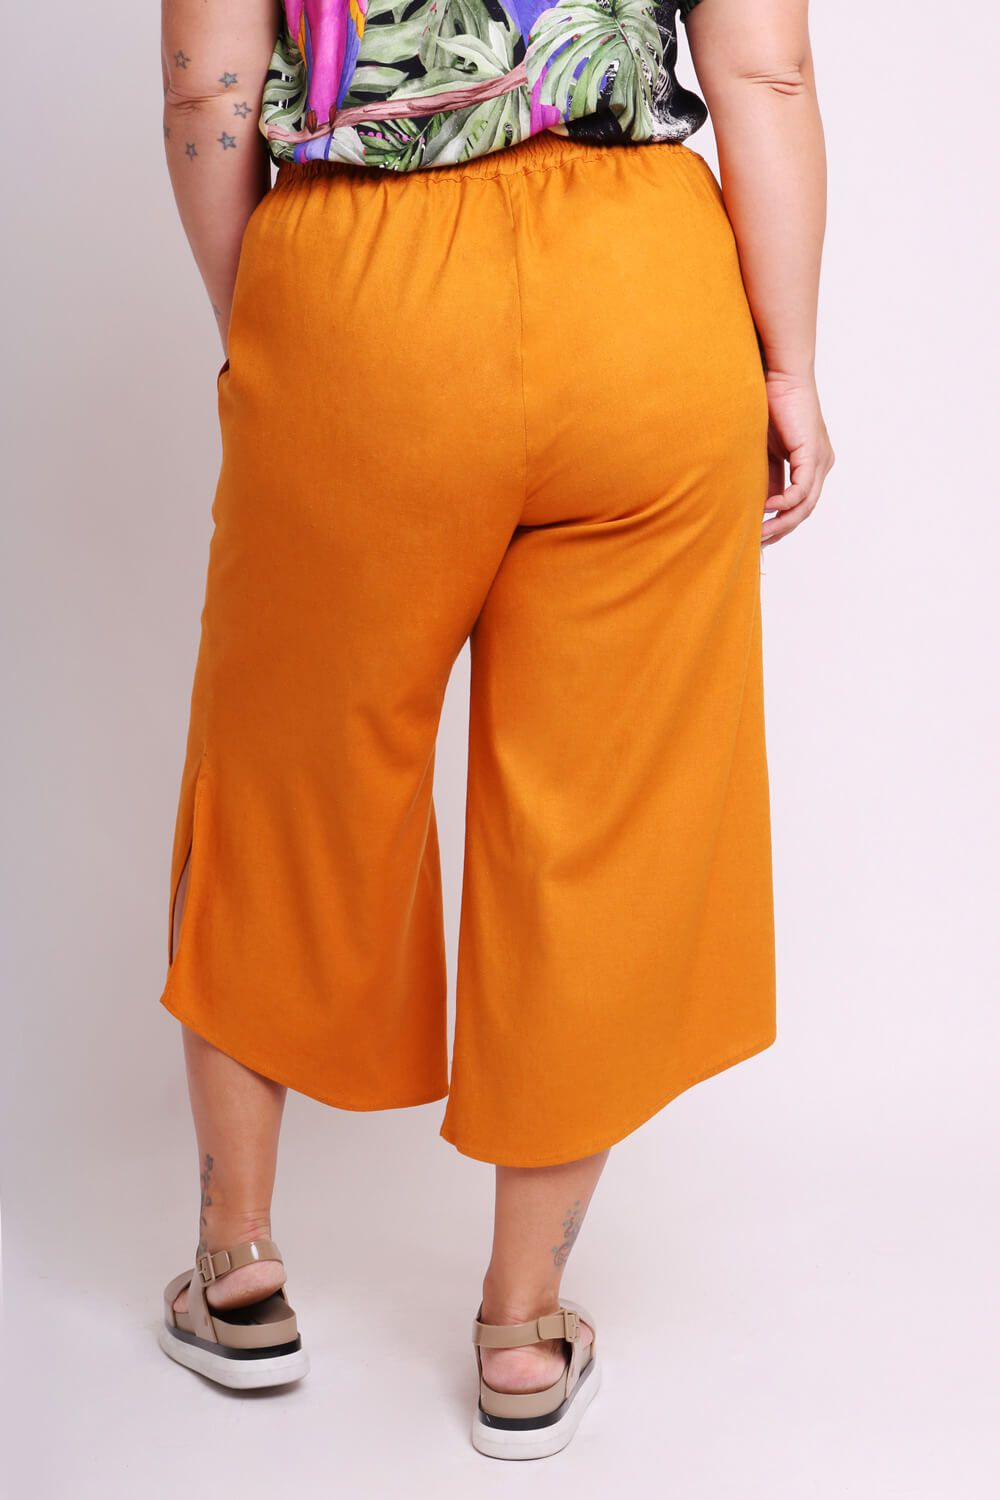 PANTACOURT PLUS SIZE LISA TERRACOTA